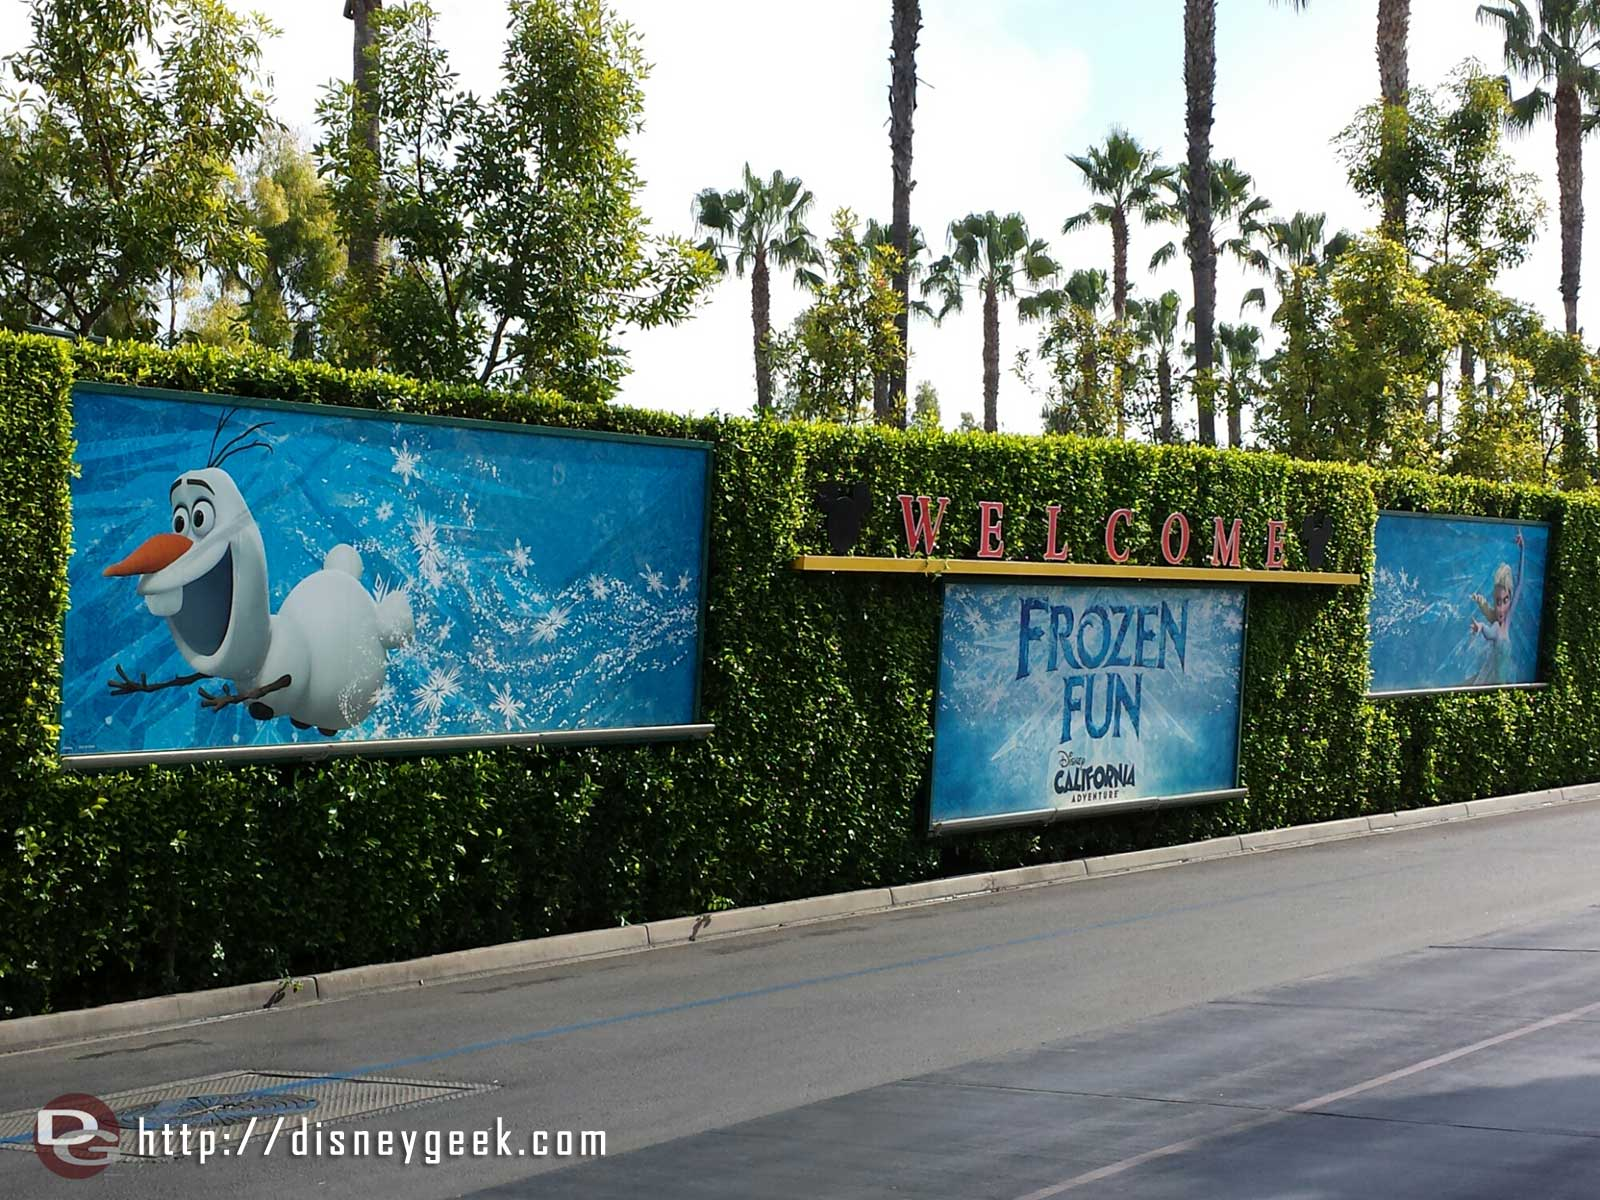 #FrozenFun billboards at the Mickey& Friends tram stop #Disneyland